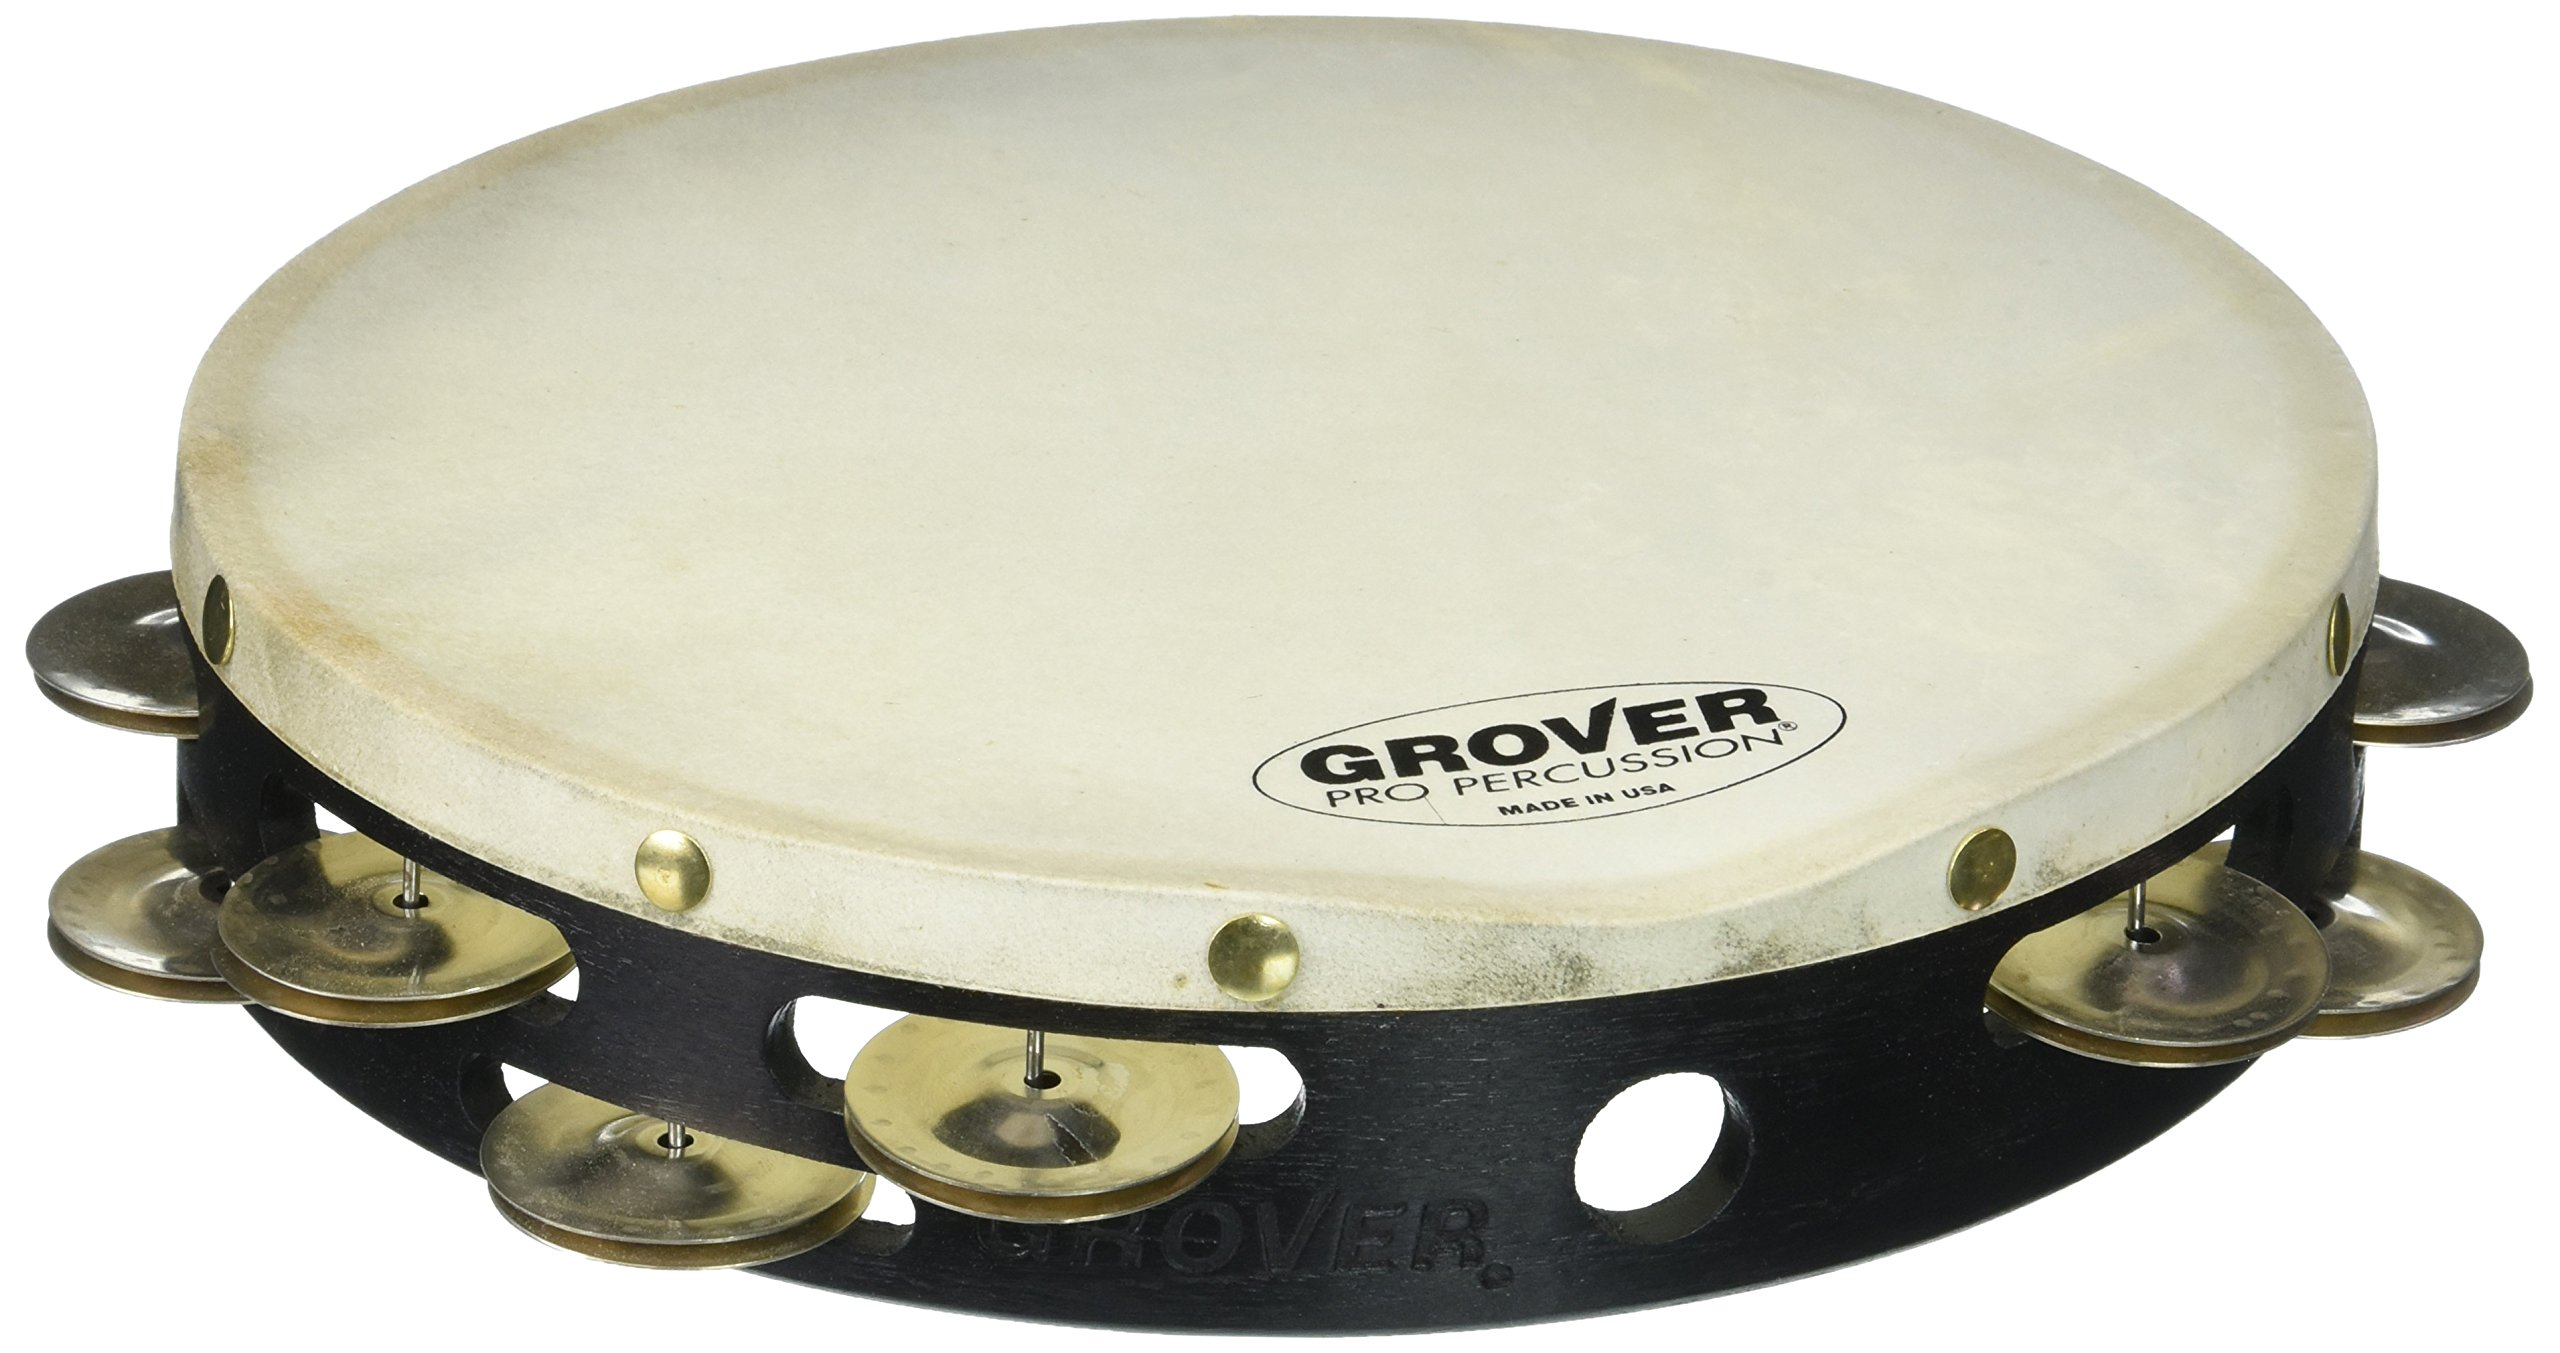 Grover Pro Projection-Plus Double-Row German Silver Tambourine 10 in. 10 in. by Grover Pro